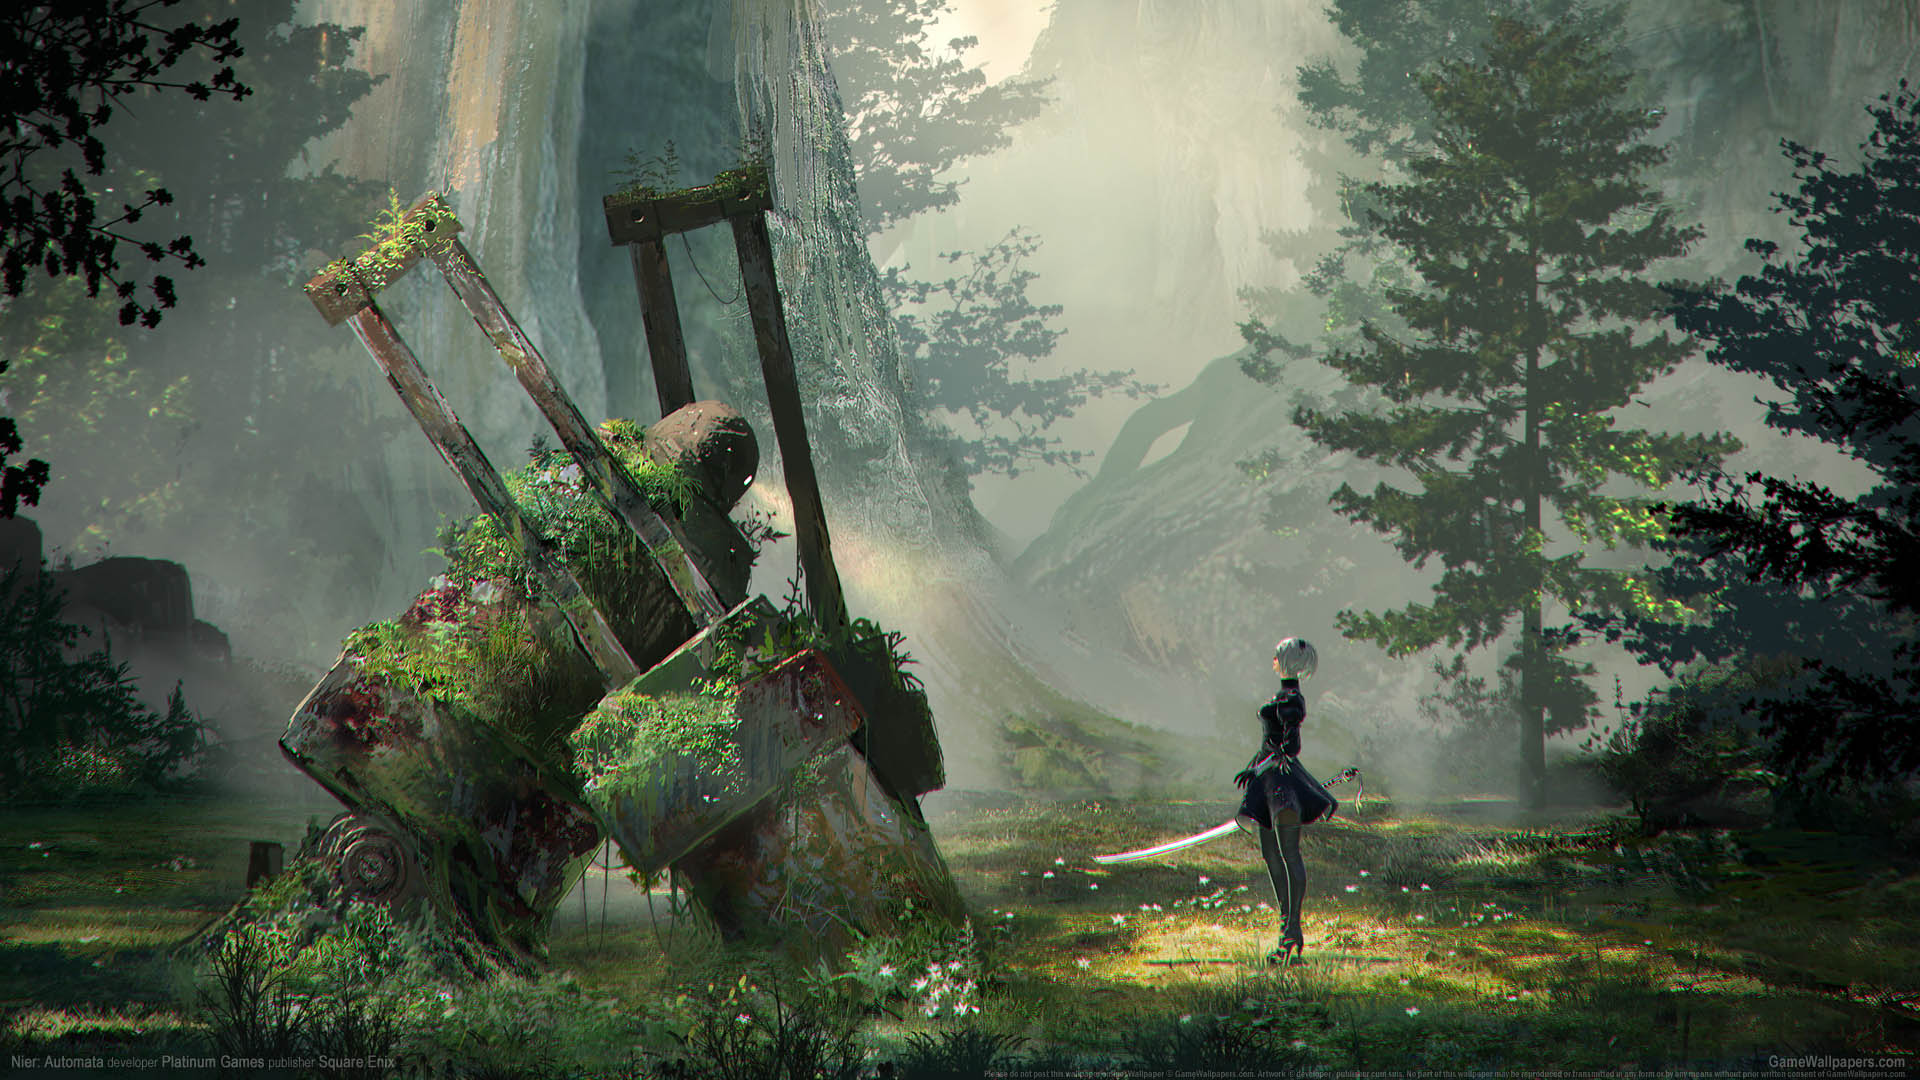 Nier Automata Fan Art Wallpaper 01 1920x1080: Nier Automata Wallpaper 01 1920x1080